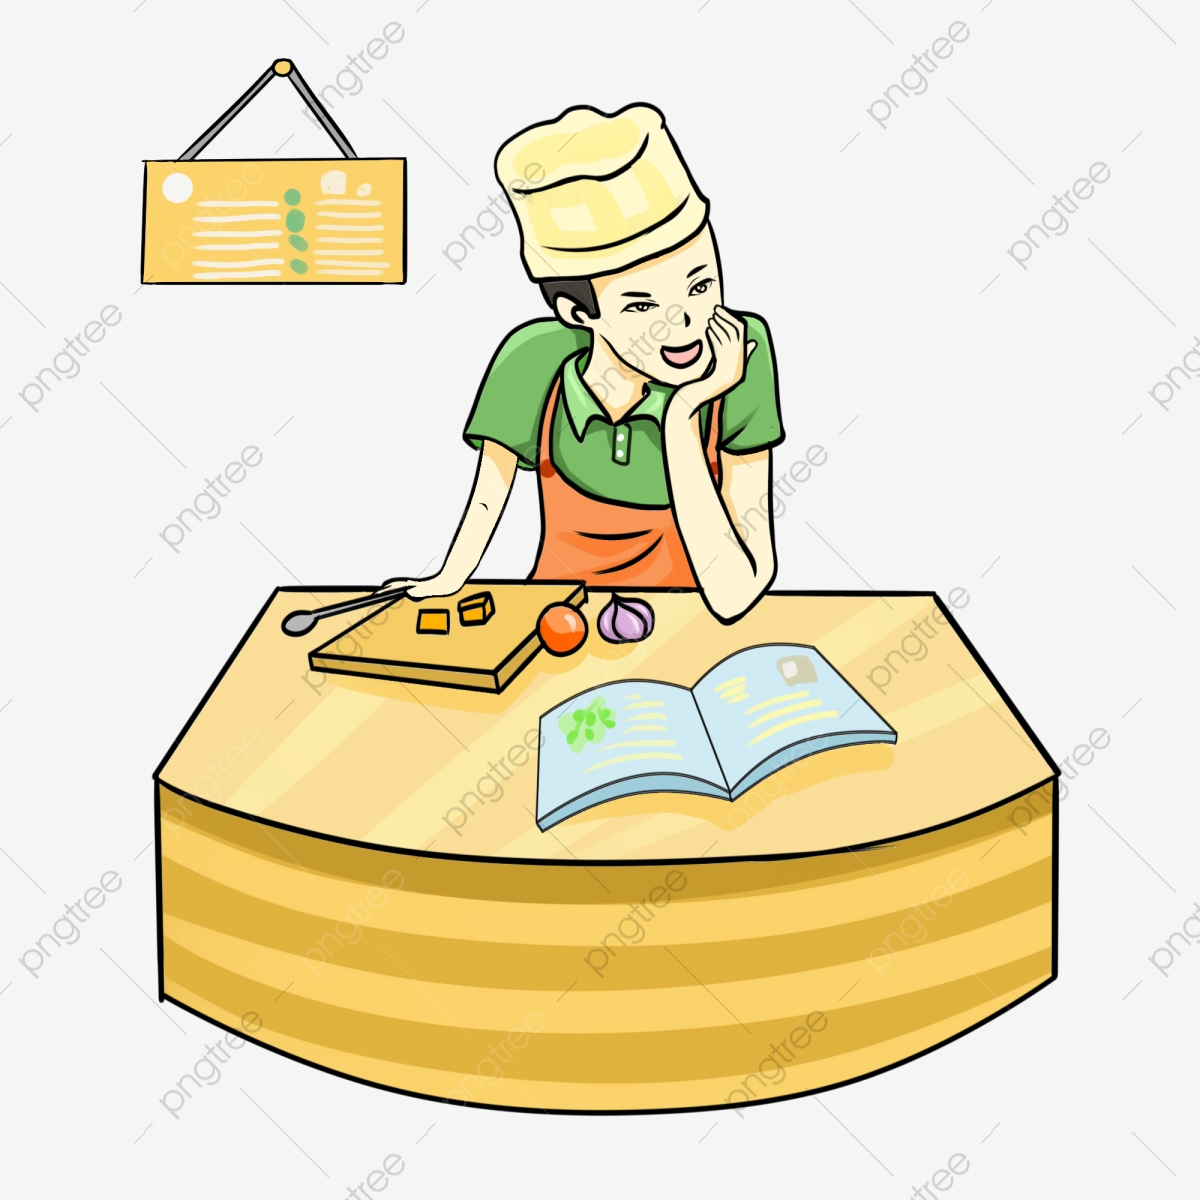 hight resolution of commercial use resource upgrade to premium plan and get license authorization upgradenow woman cooking woman clipart